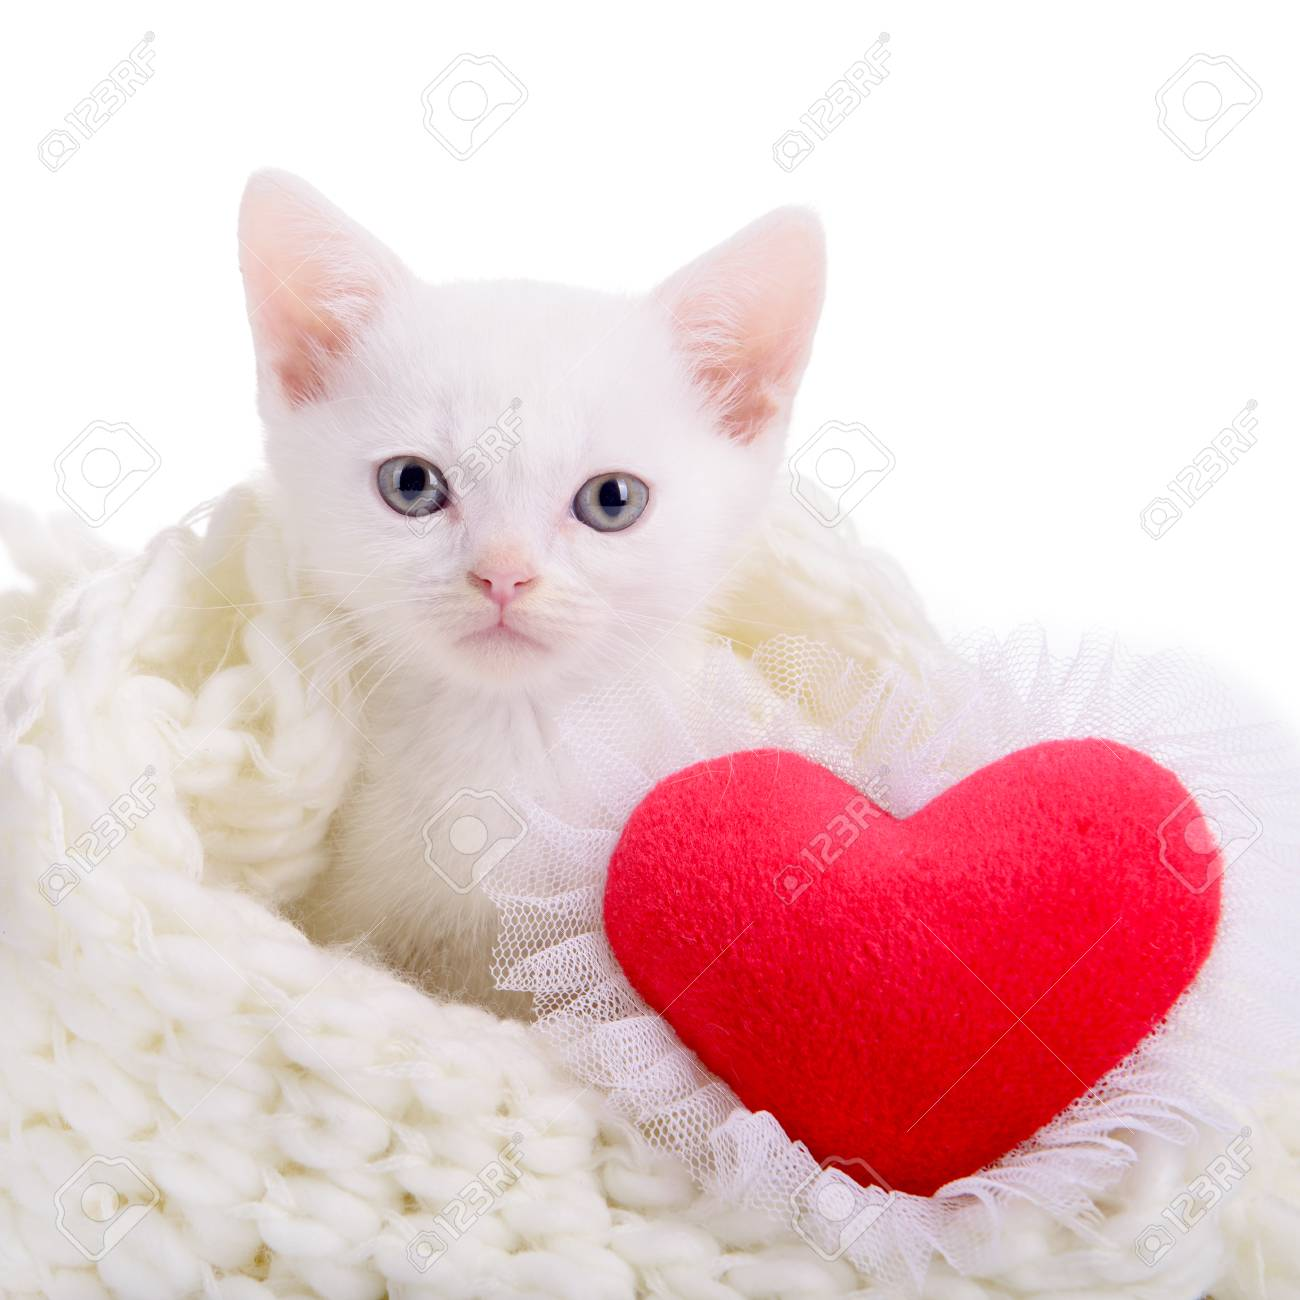 Little White Kitten With Red Heart Valentine S Day Stock Photo